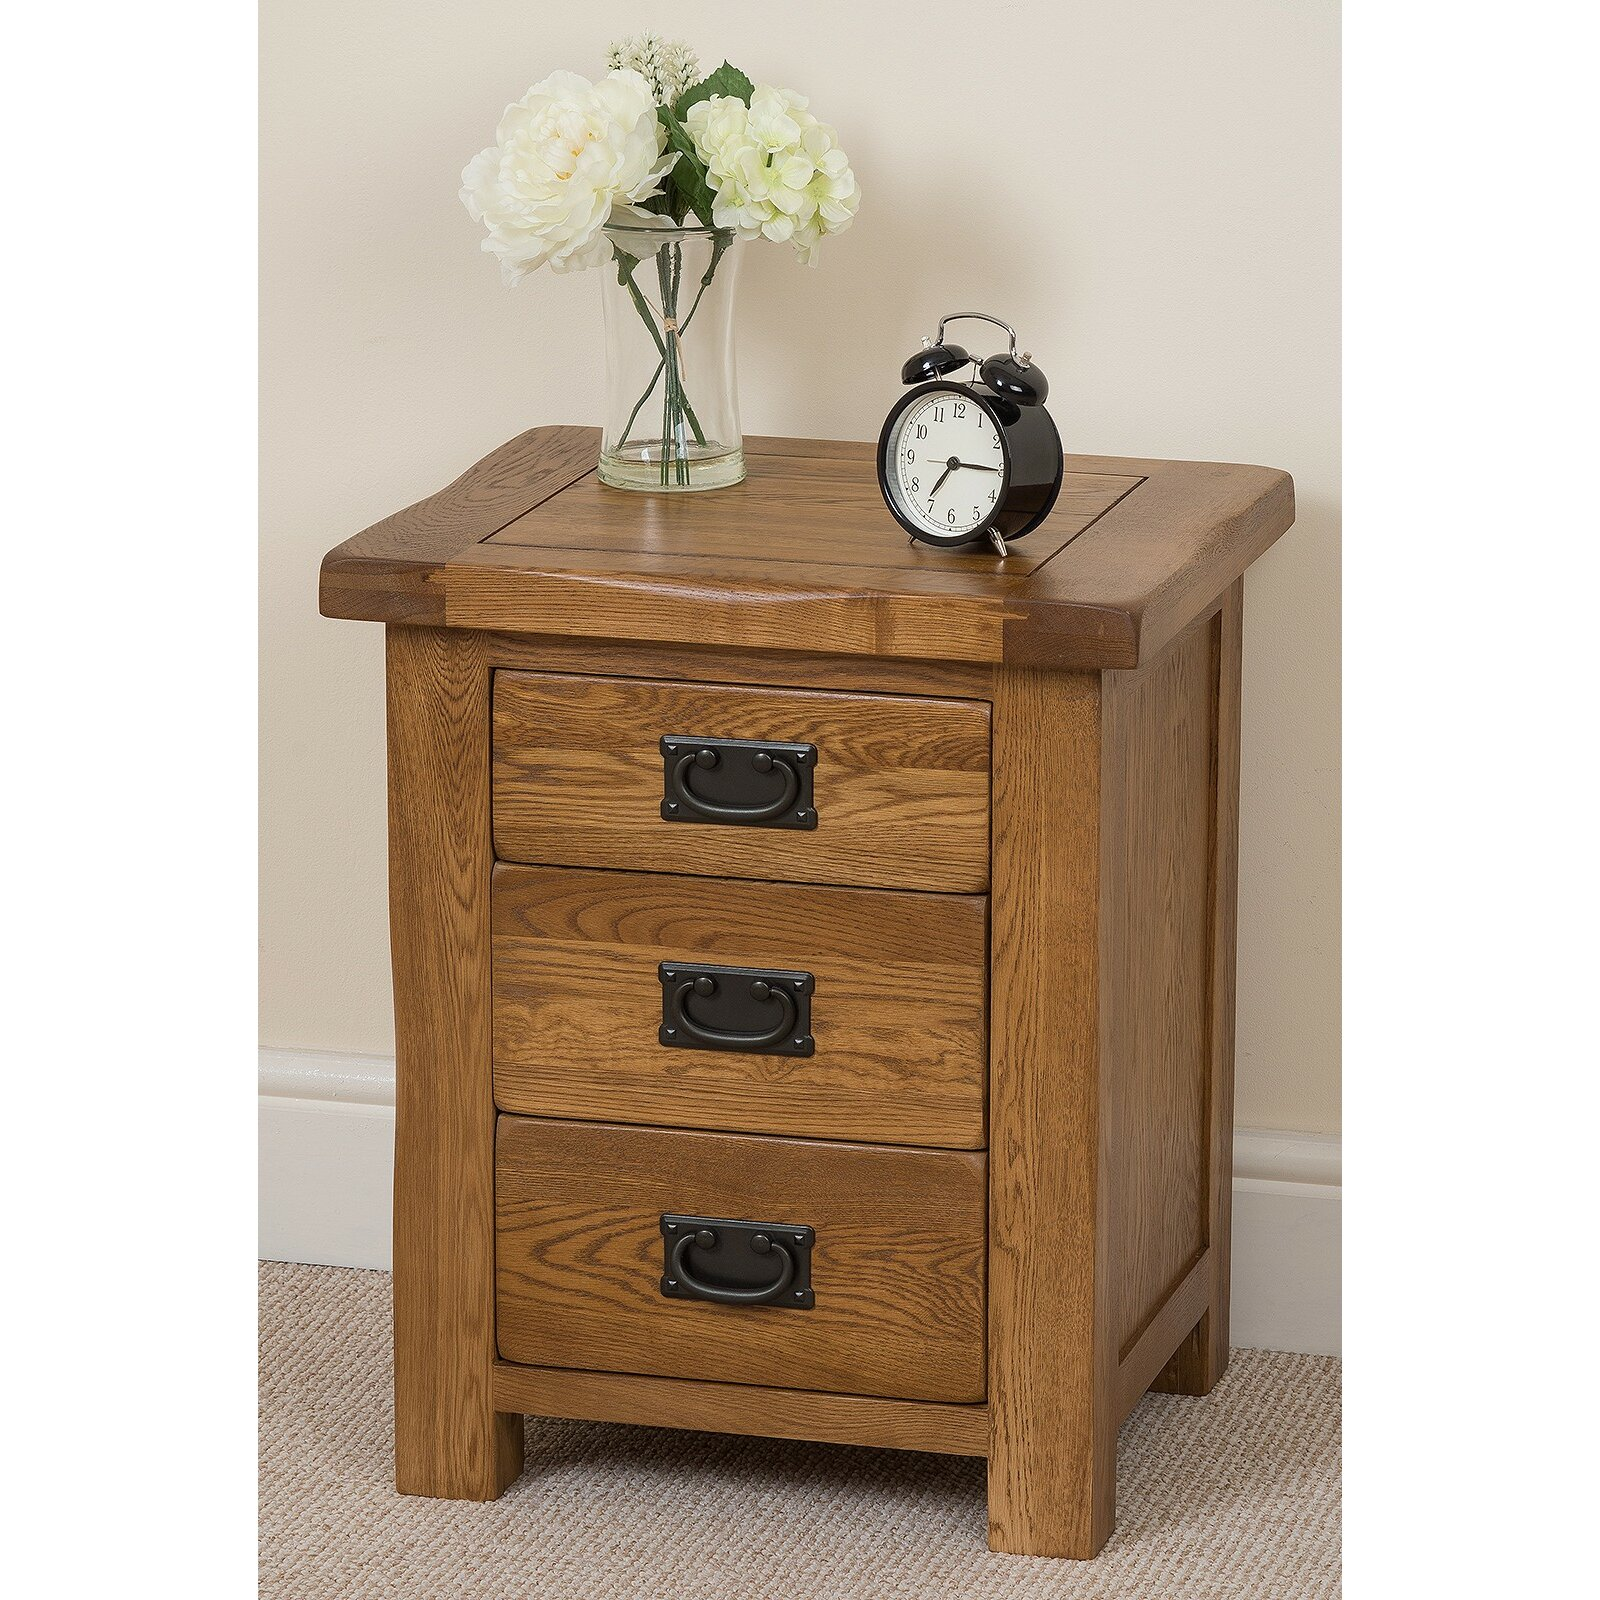 hokku designs cotswold 3 drawer bedside table wayfair uk. Black Bedroom Furniture Sets. Home Design Ideas